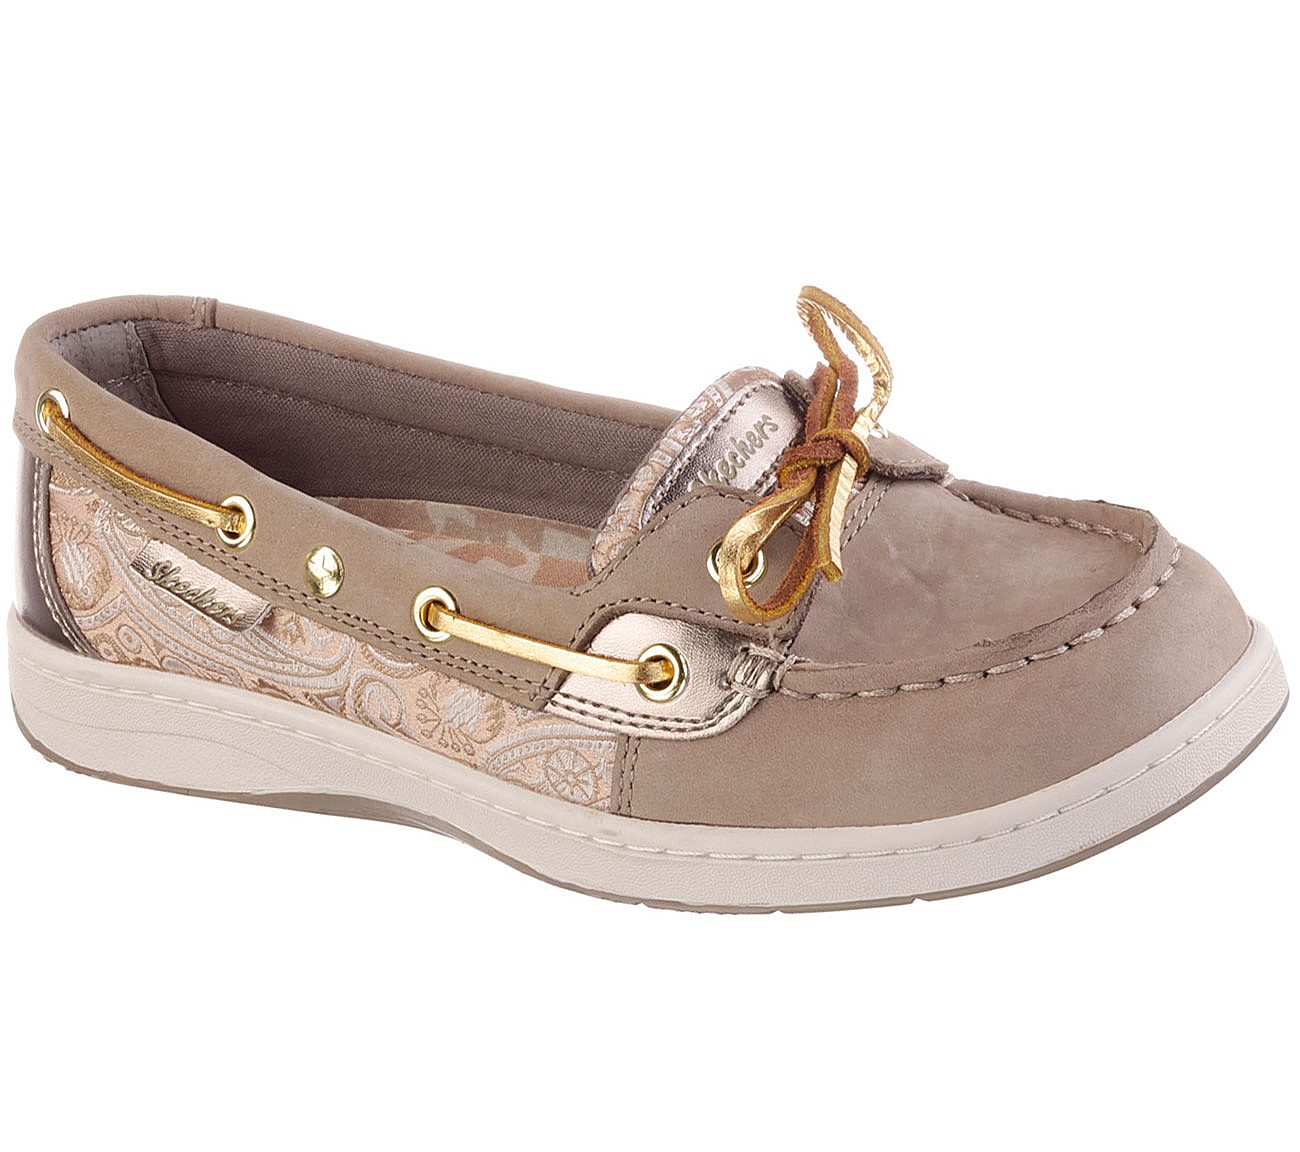 bolita mezcla General  Selling - skechers boat shoes - OFF67% - Free delivery -  www.posterbuddy.com!